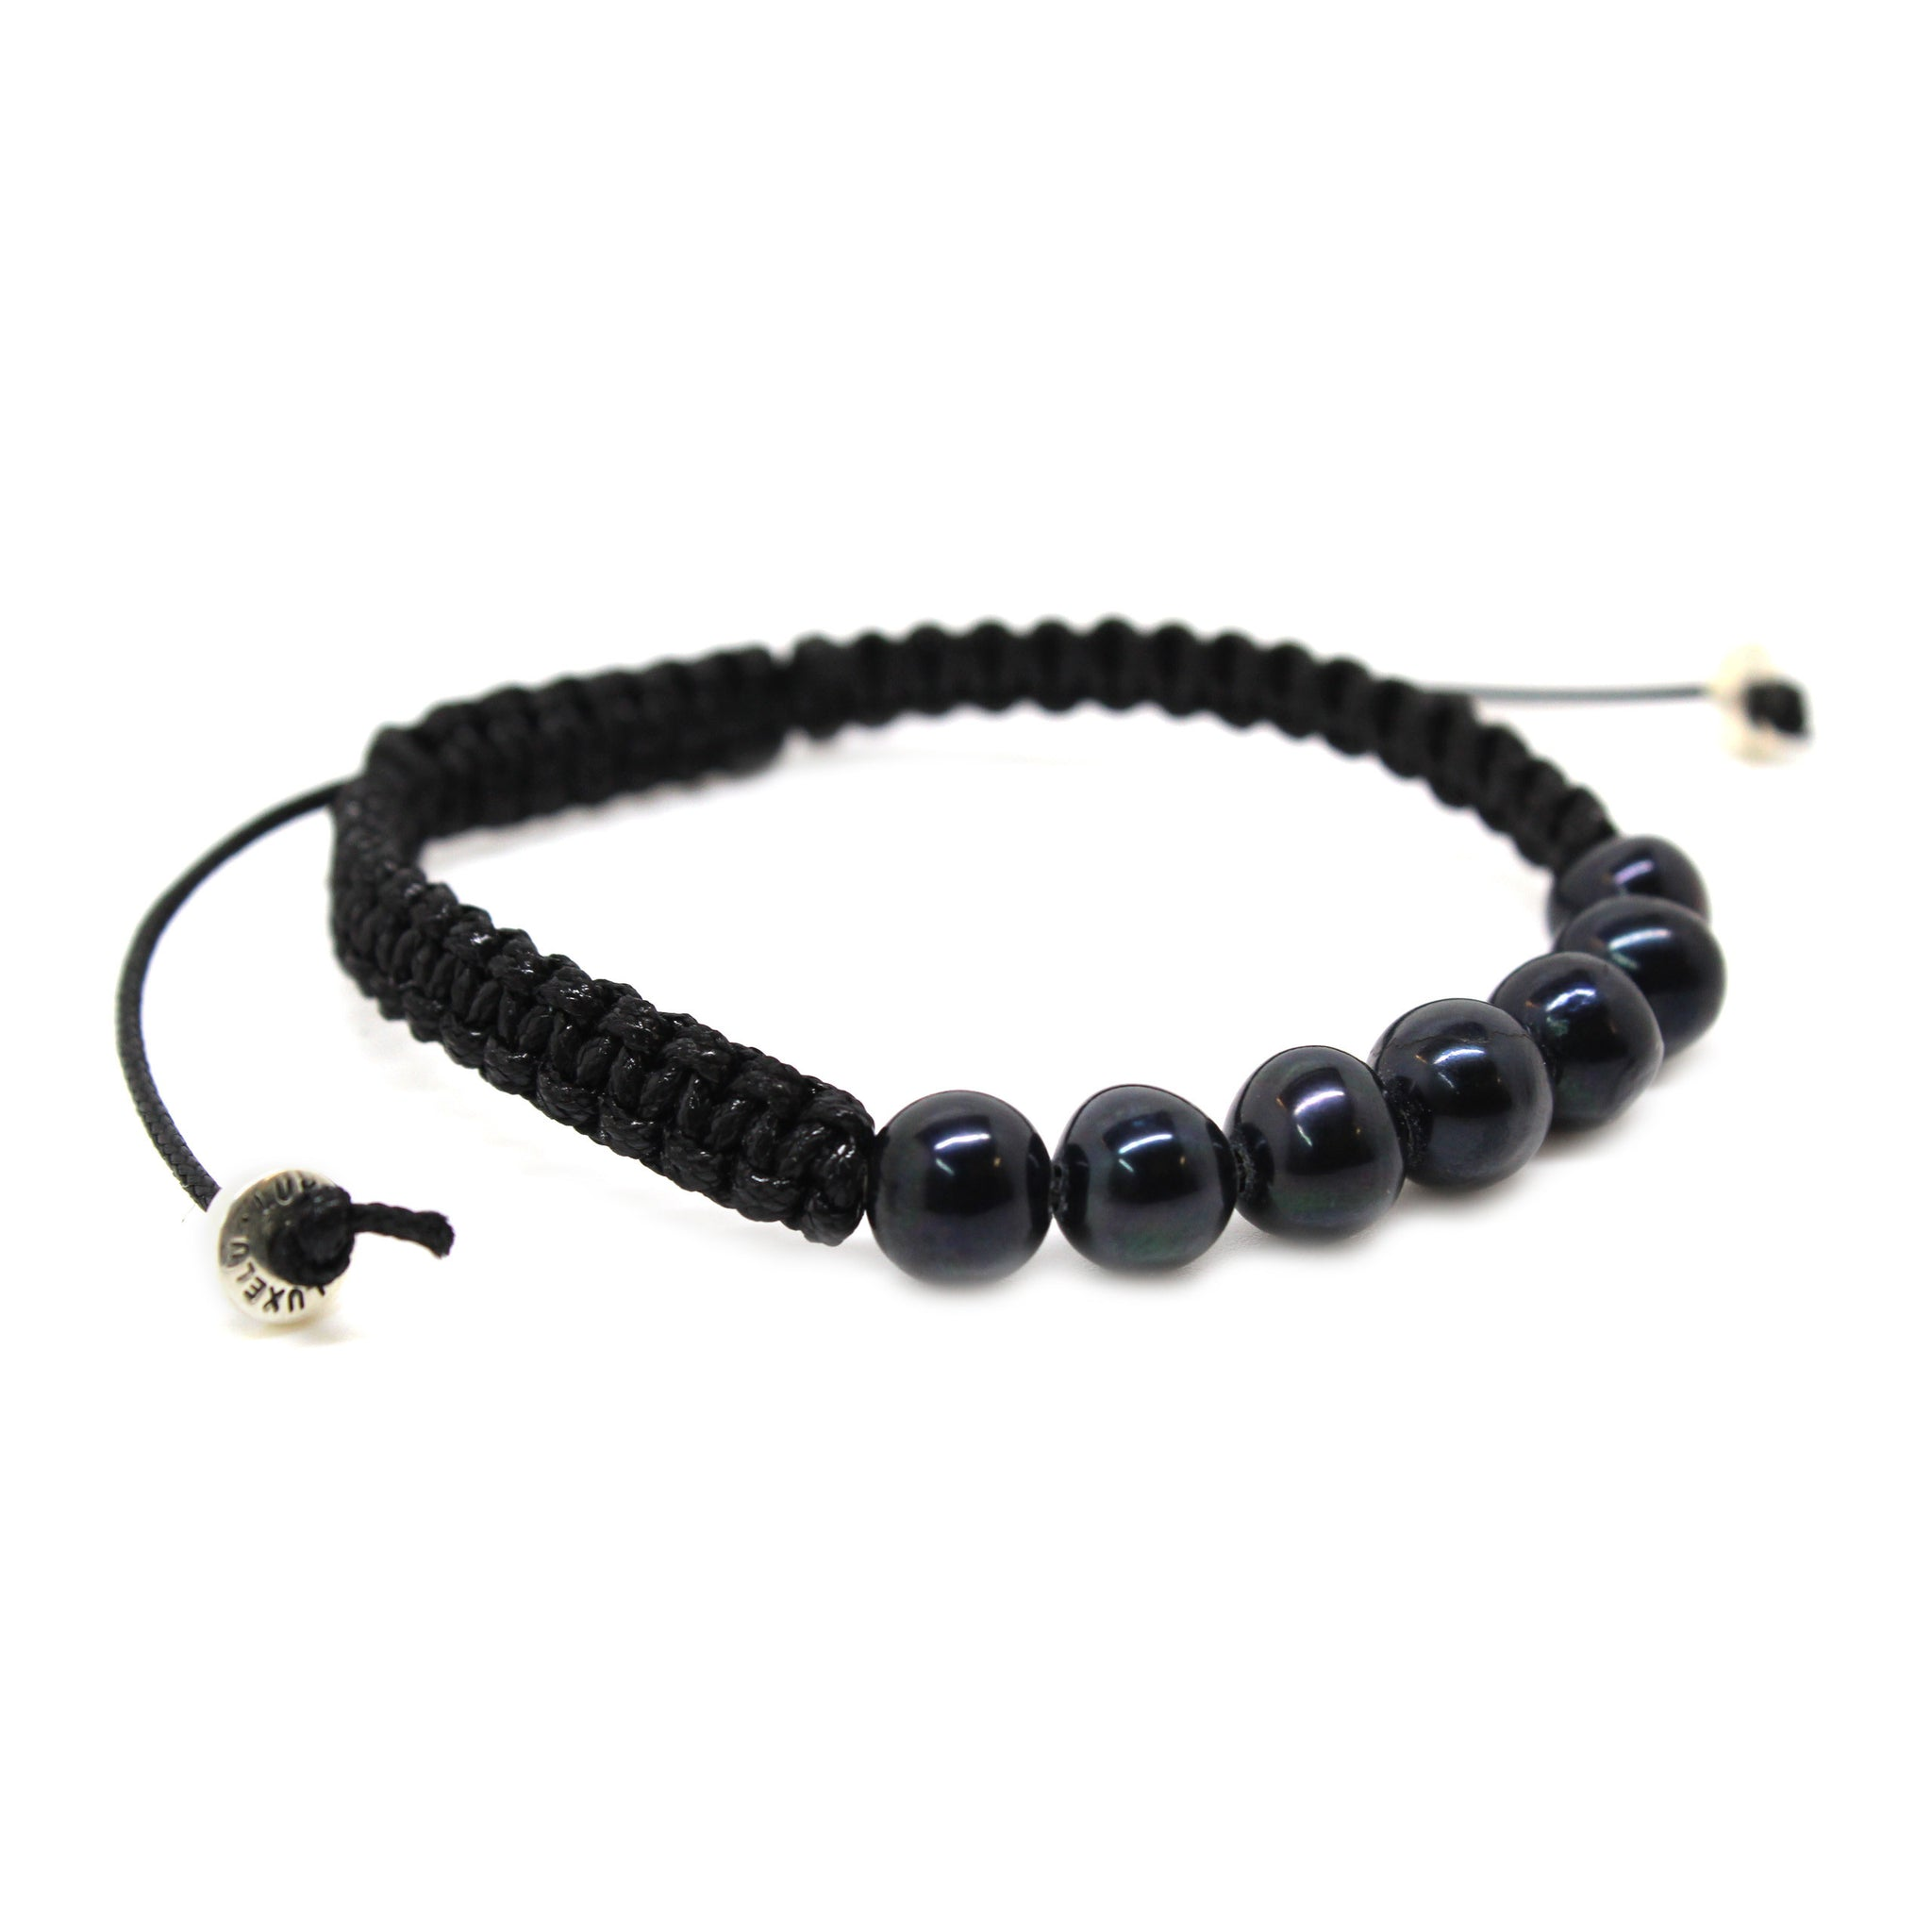 width bracelet bangles key link wholesale s pattern color greek black chain gun product bracelets men mens